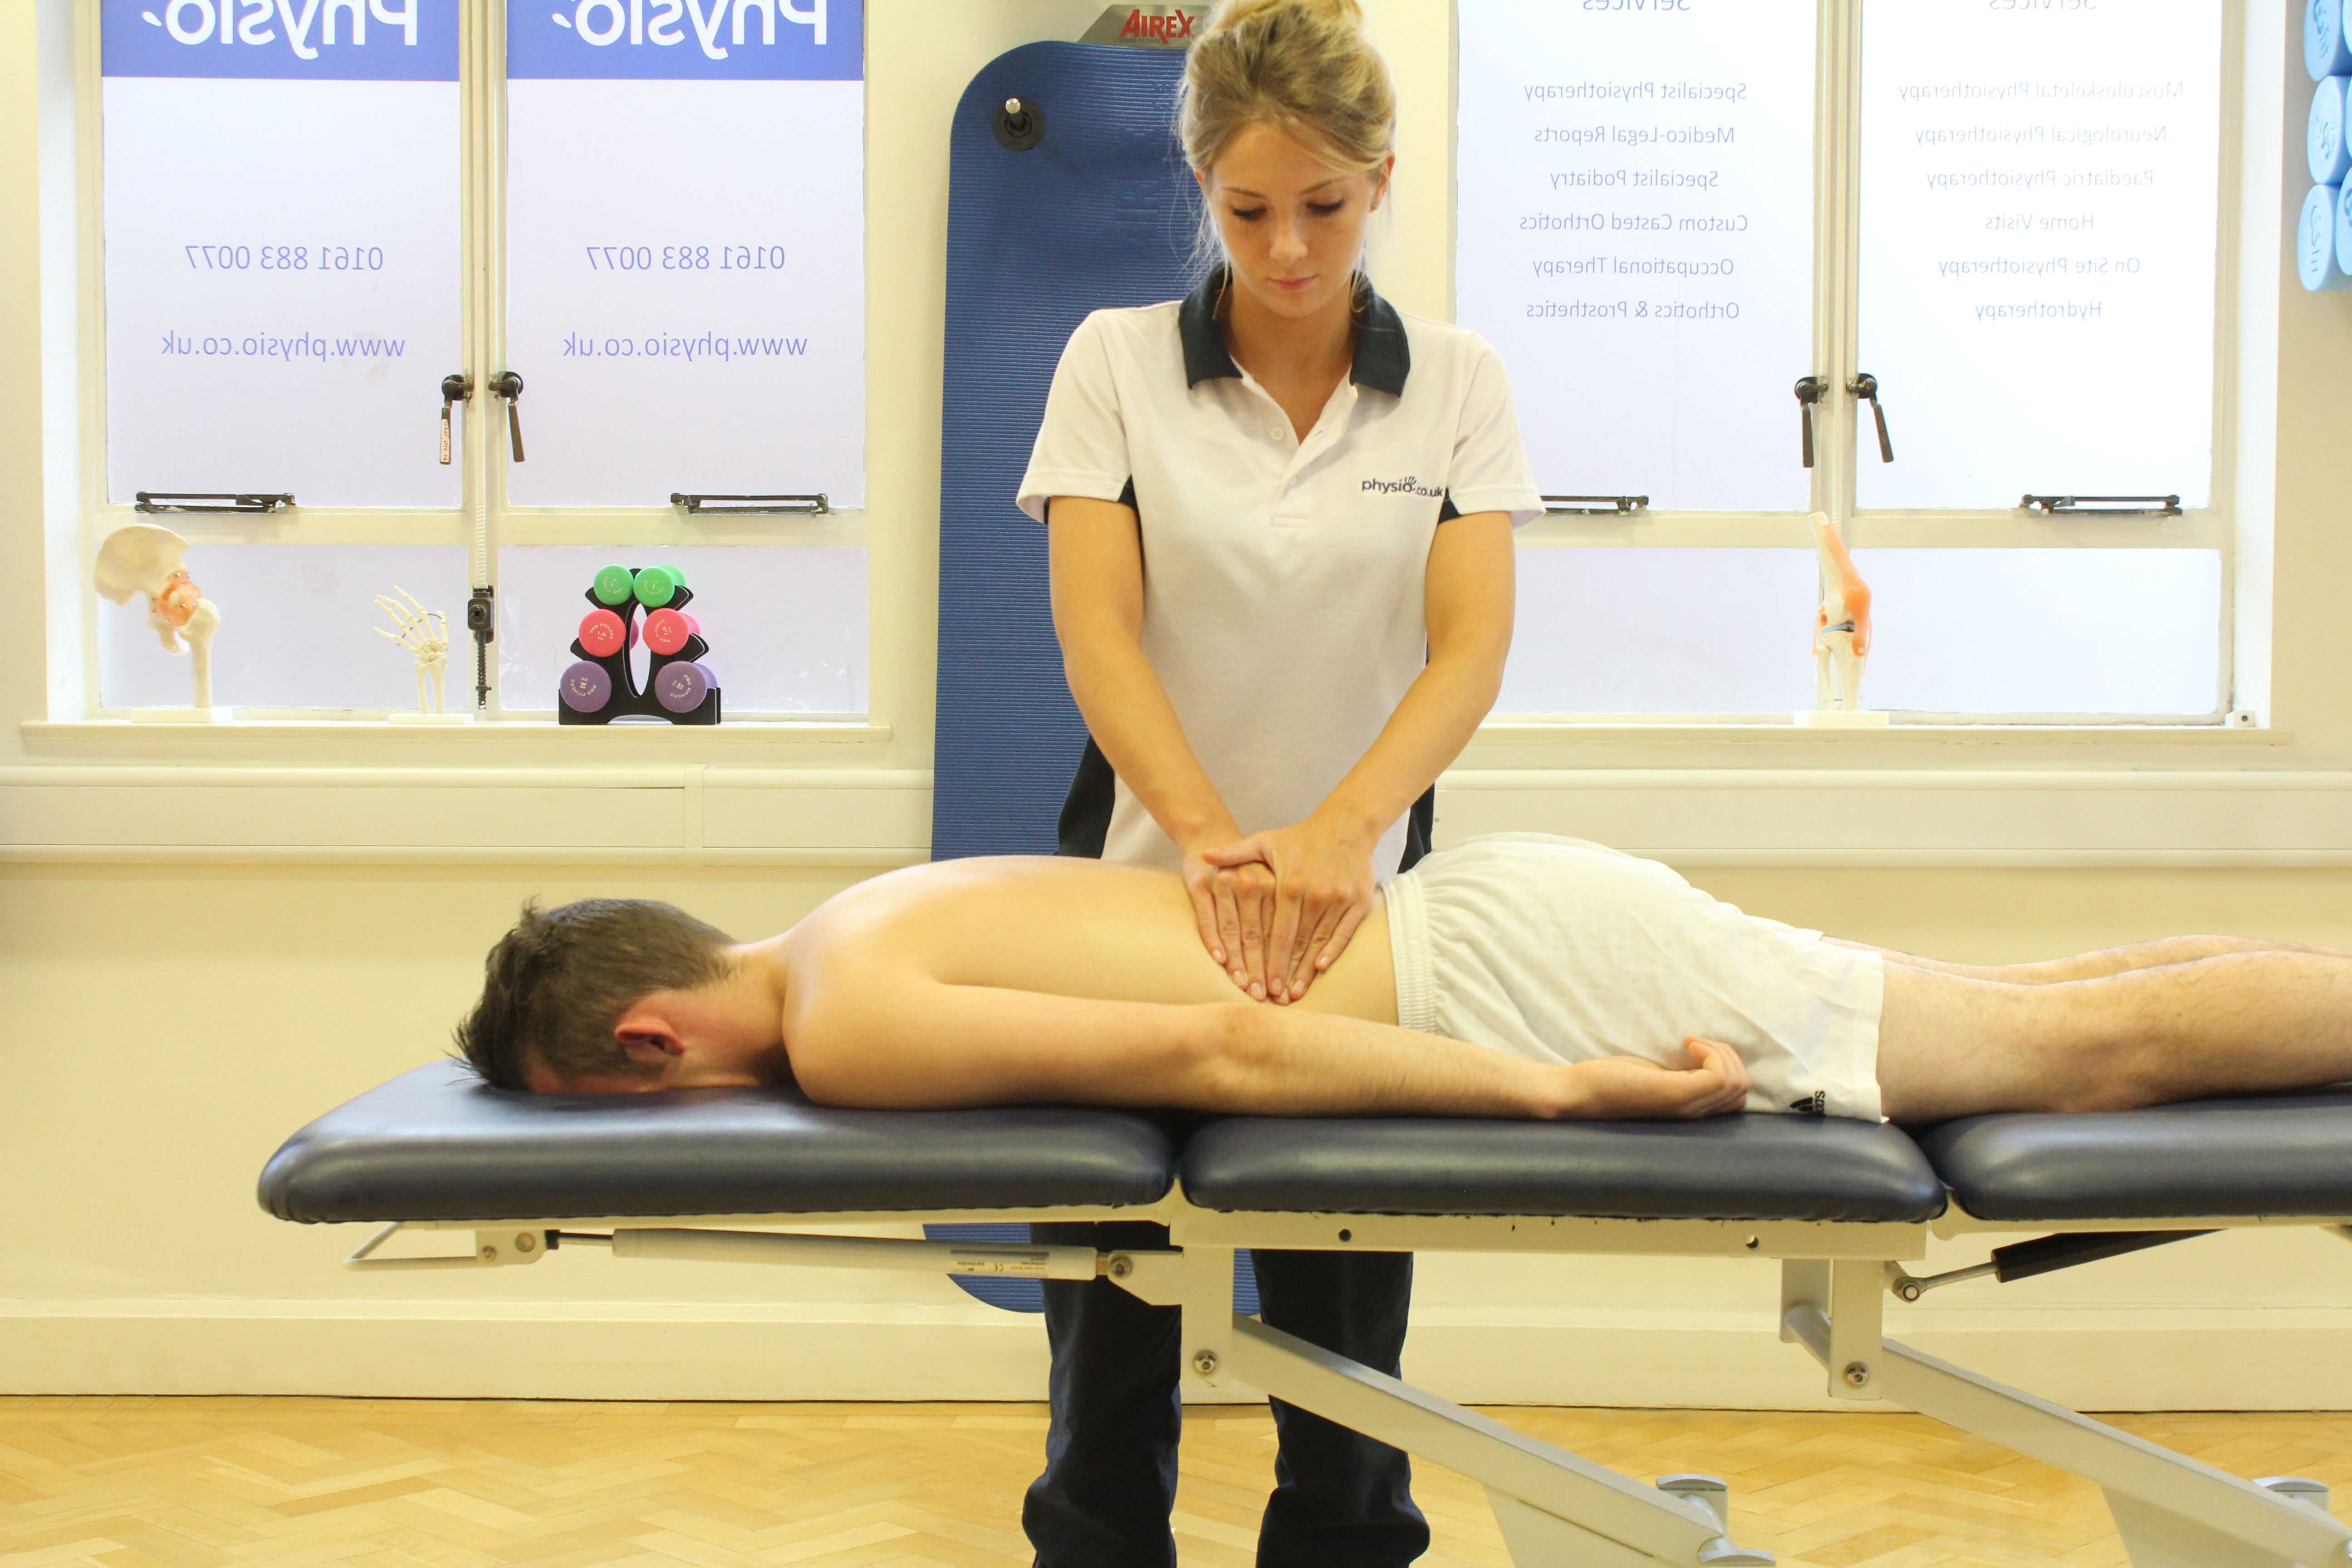 Deep tissue massage of the lower back by a specialist massage therapist